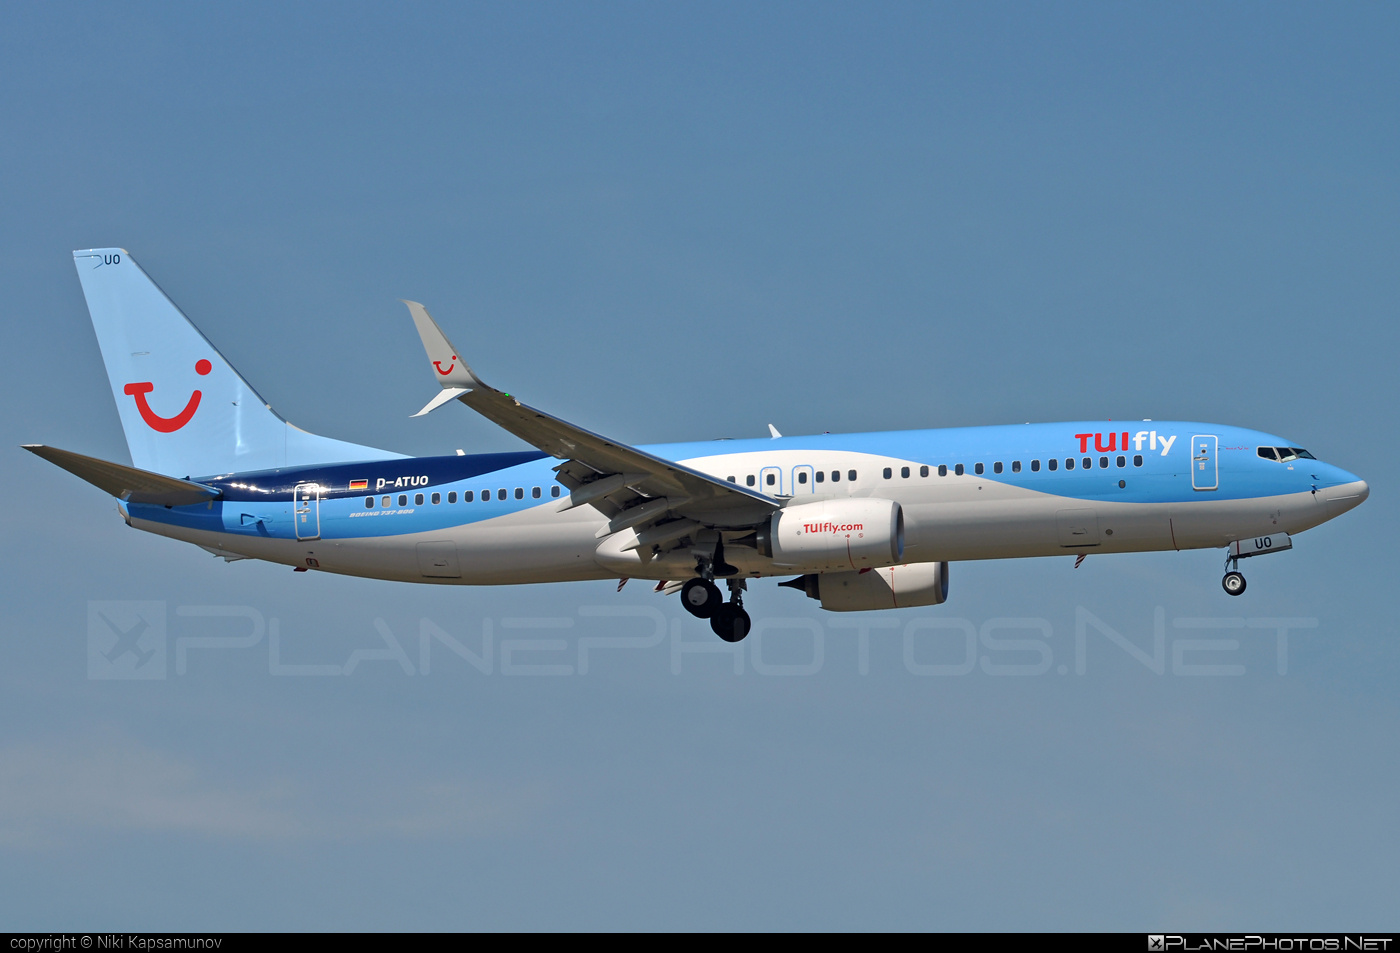 Boeing 737-800 - D-ATUO operated by TUIfly #b737 #b737nextgen #b737ng #boeing #boeing737 #tui #tuifly